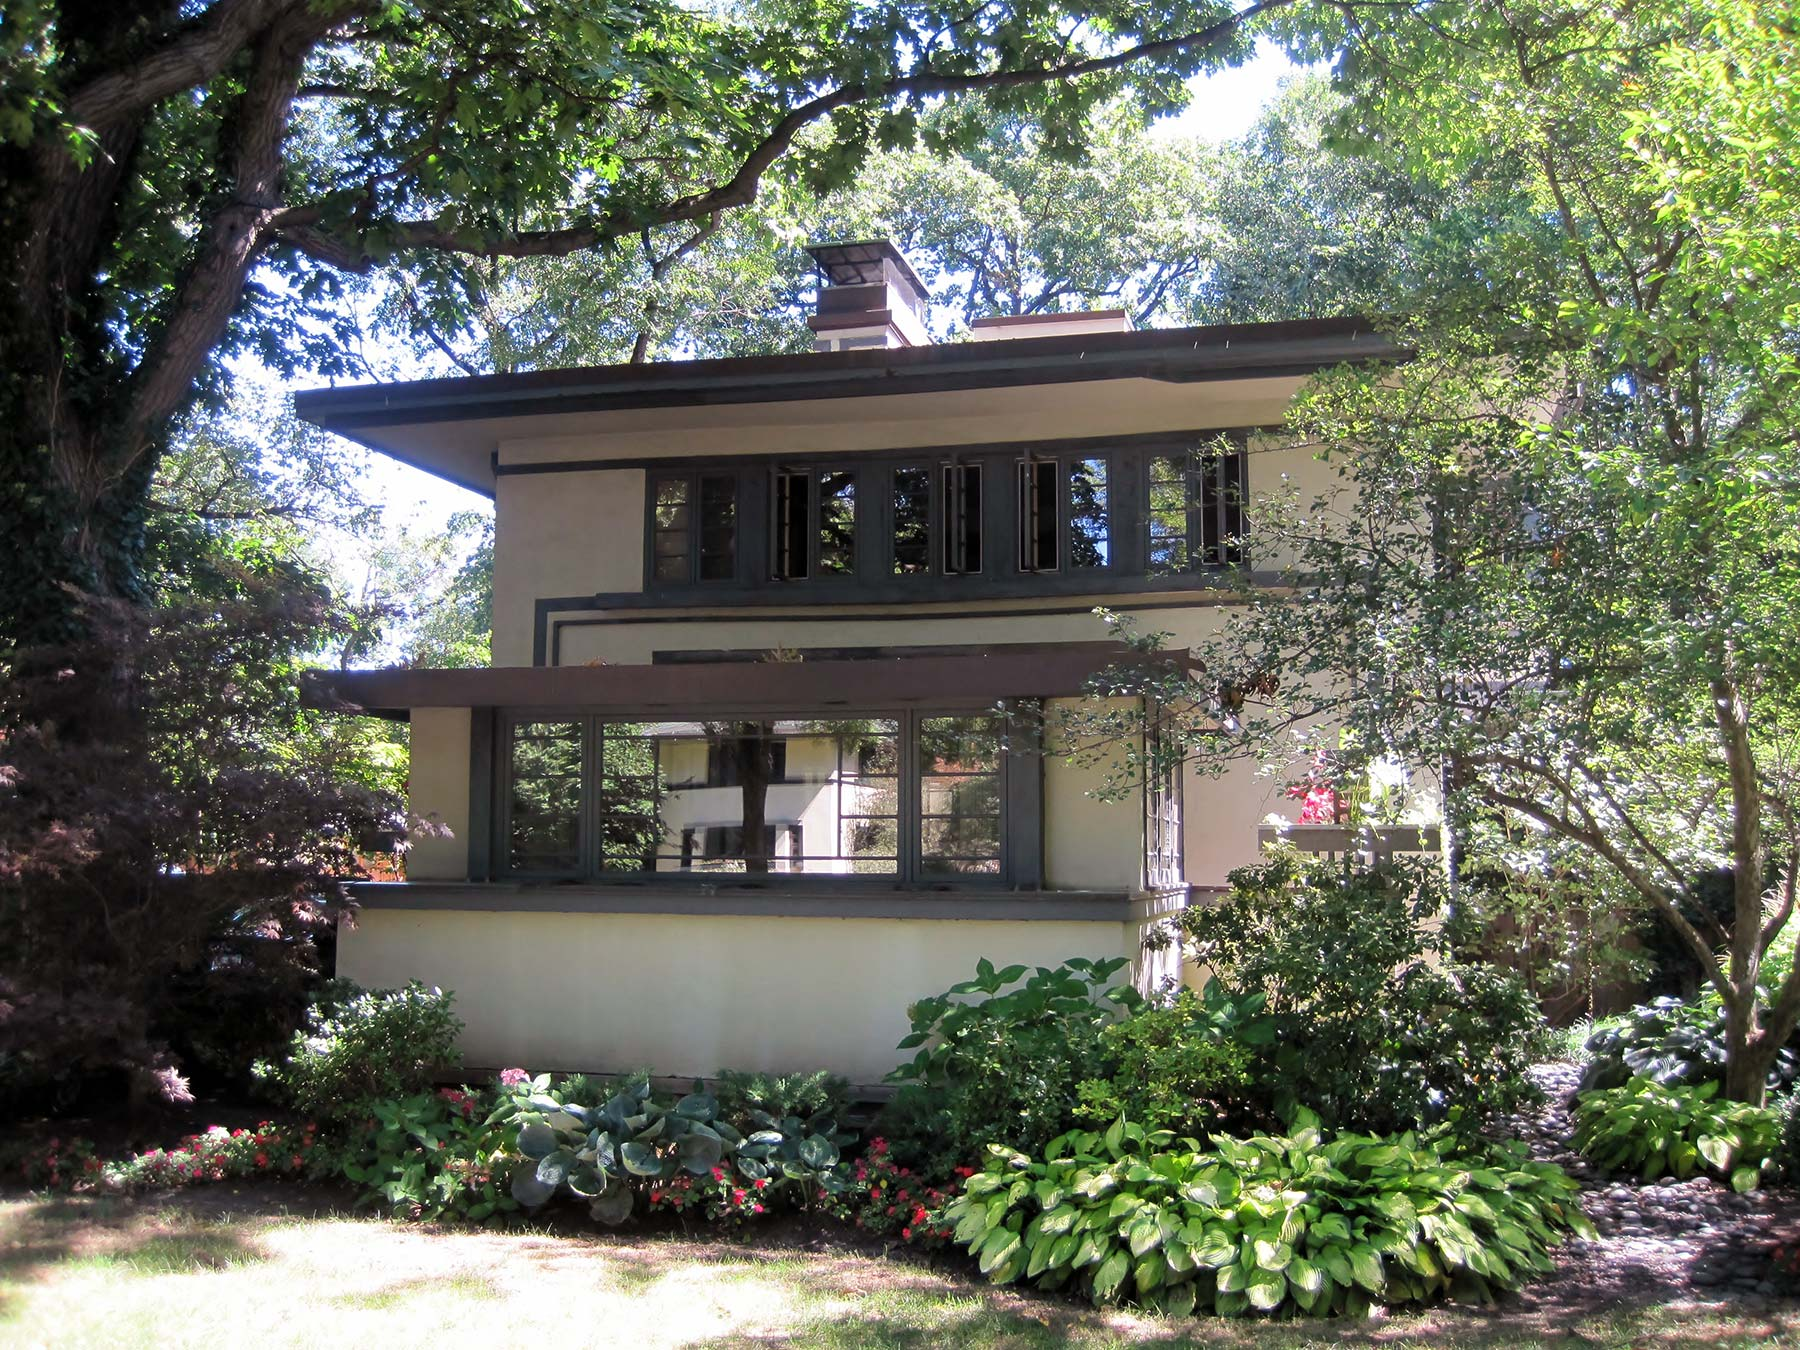 William Drummond House, River Forest, Illinois. Photo courtesy of Wikicommons.